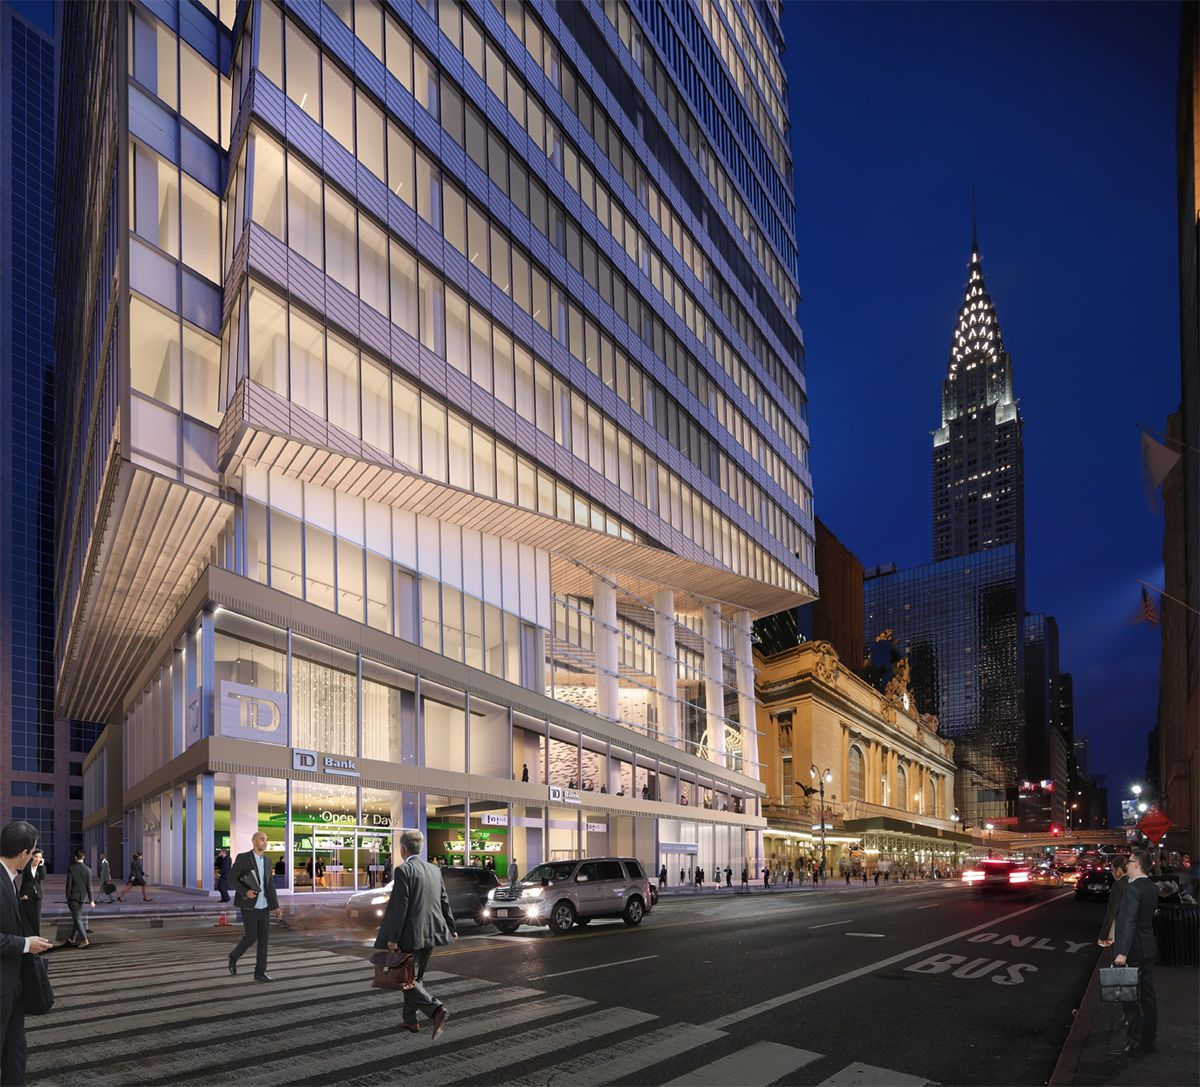 <div class='meta'><div class='origin-logo' data-origin='none'></div><span class='caption-text' data-credit=''>Renderings show a new all-glass, high-rise office building that will be situated next to Grand Central Terminal in Midtown East in New York City.</span></div>